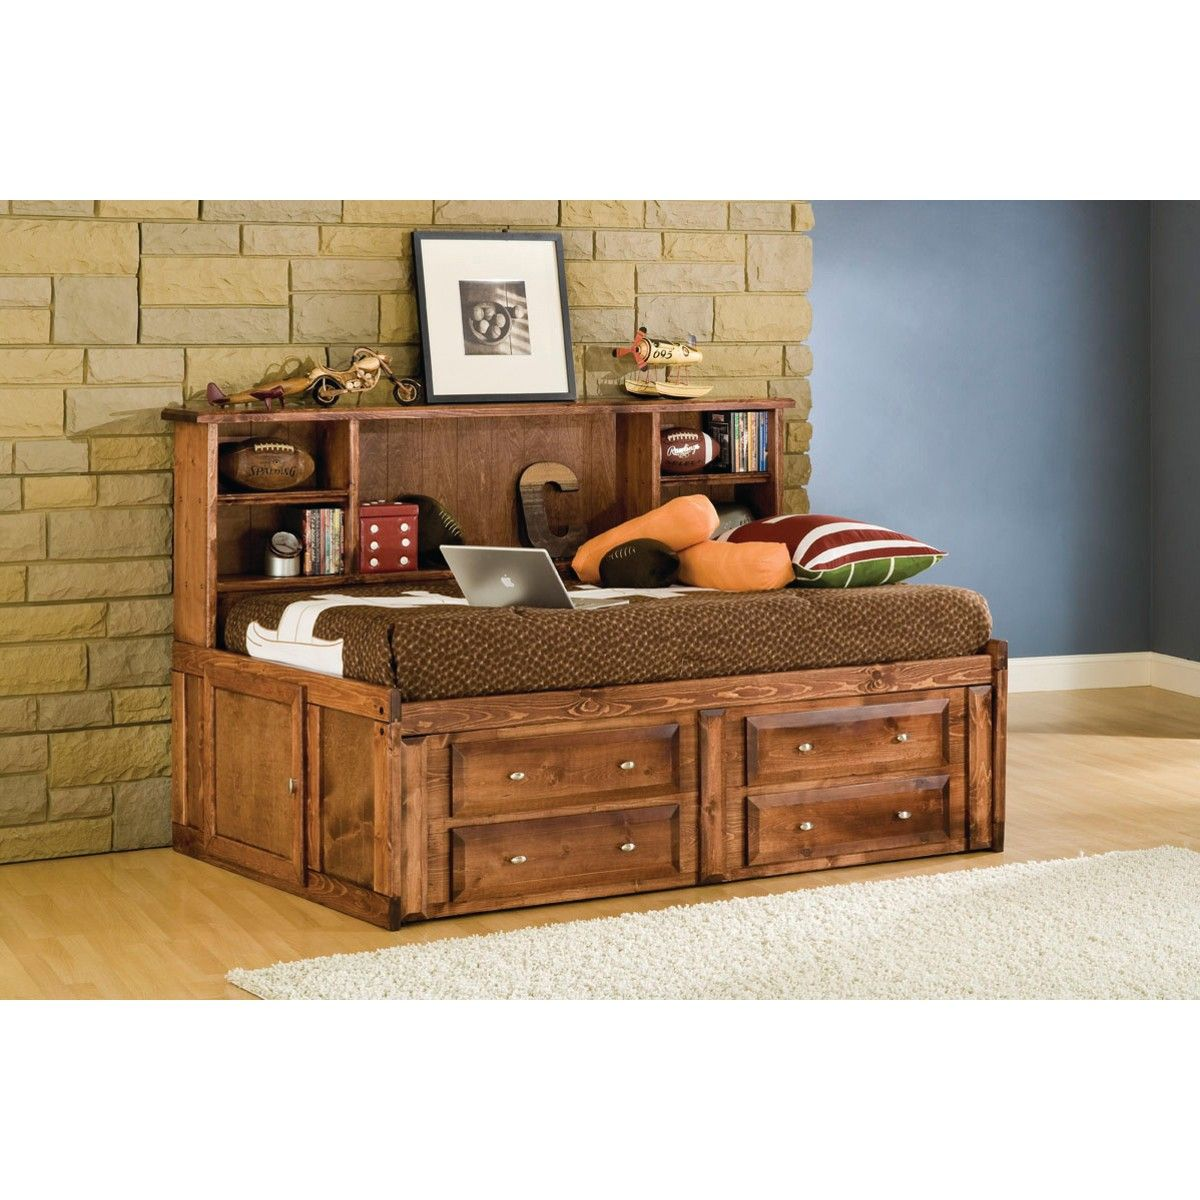 conns cupboard design home mirror conn furniture sets bed georgetown store creative bedroom s dresser dark extremely queen